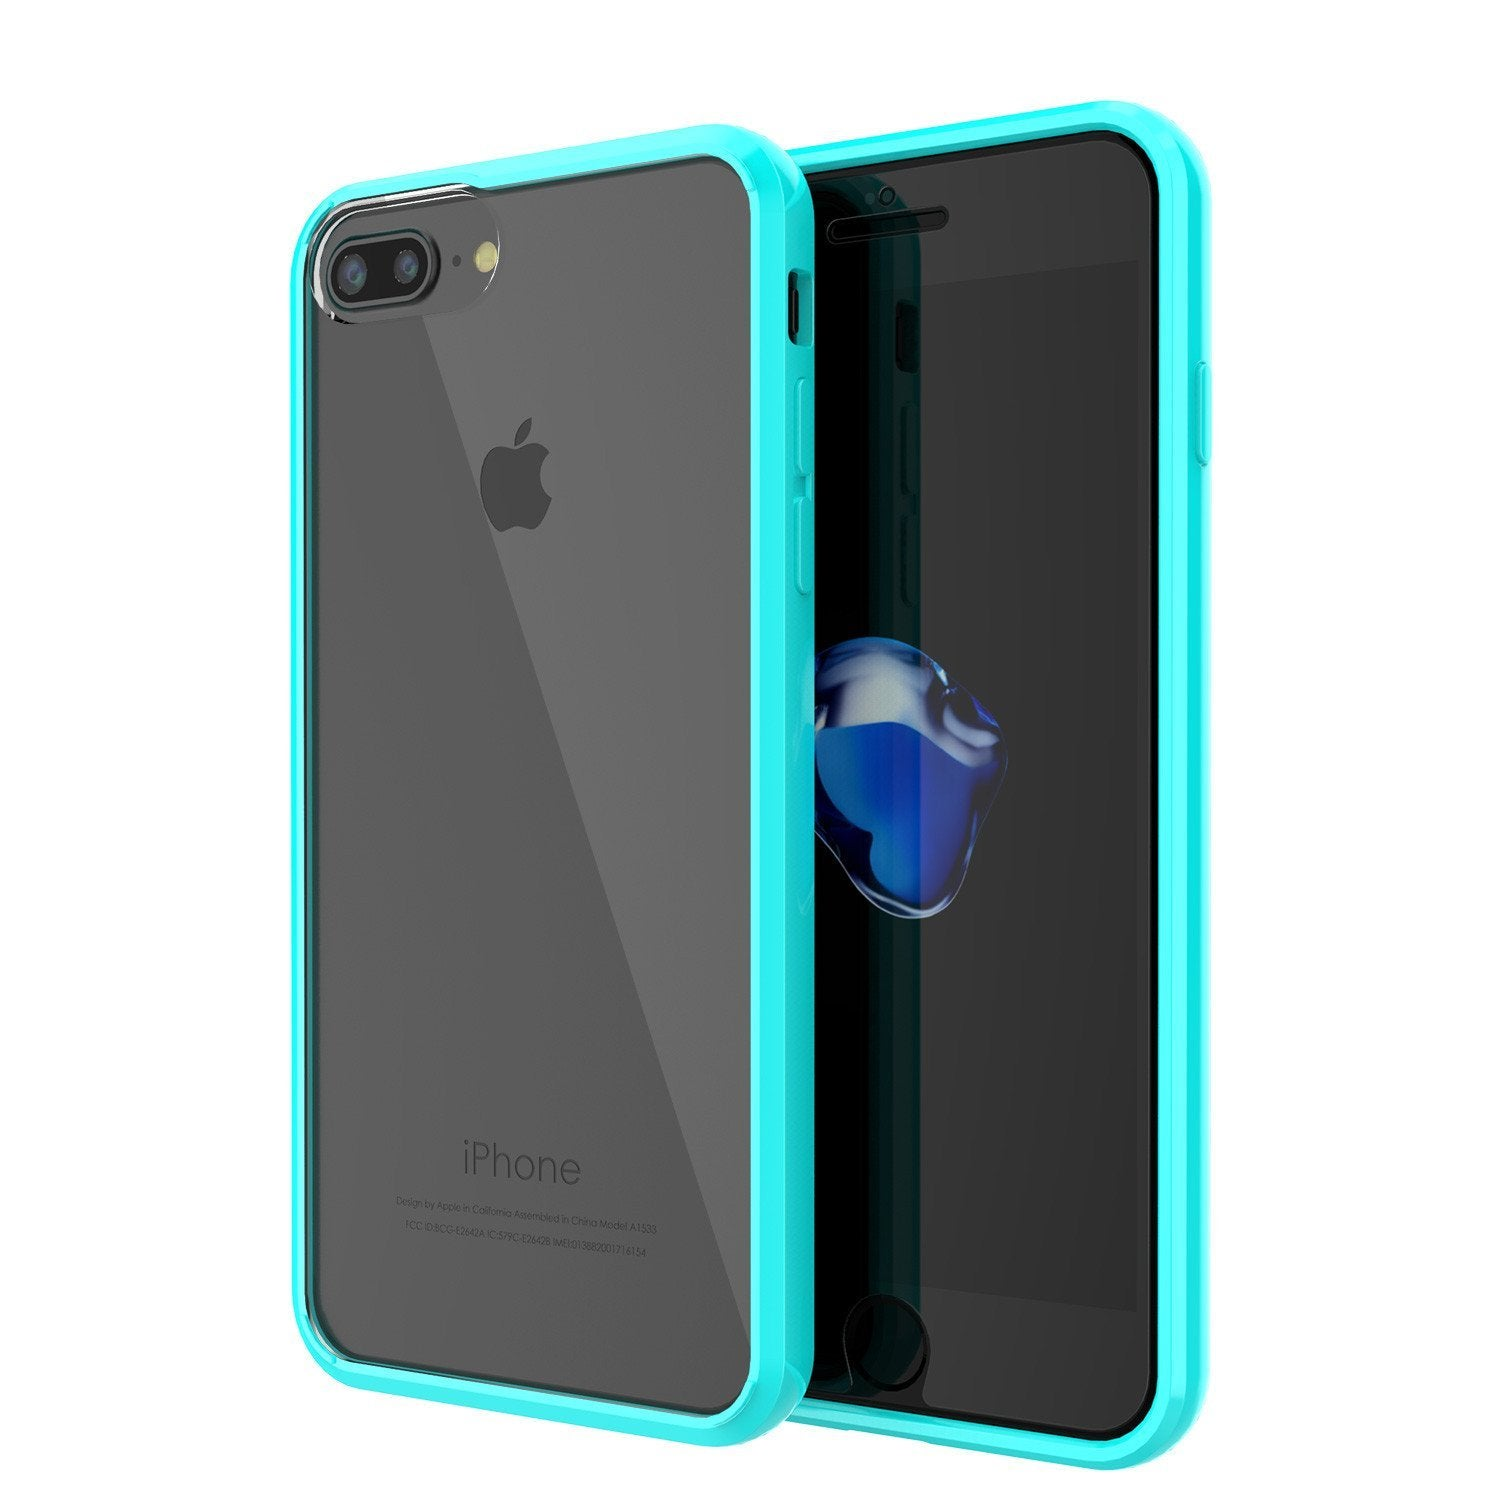 "iPhone SE (4.7"") Case Punkcase® LUCID 2.0 Teal Series w/ PUNK SHIELD Screen Protector 